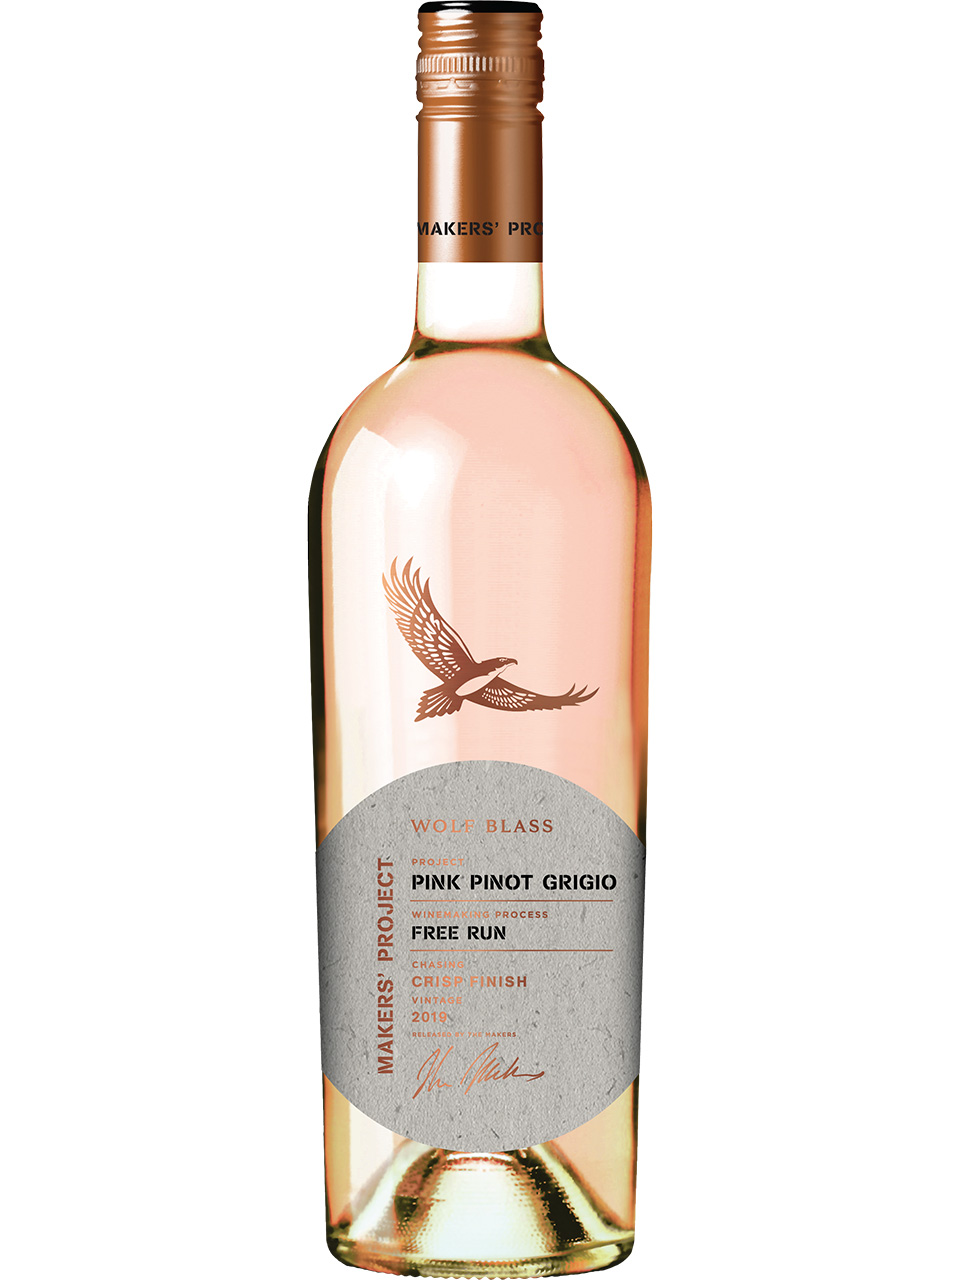 Wolf Blass Makers' Project Pink Pinot Grigio